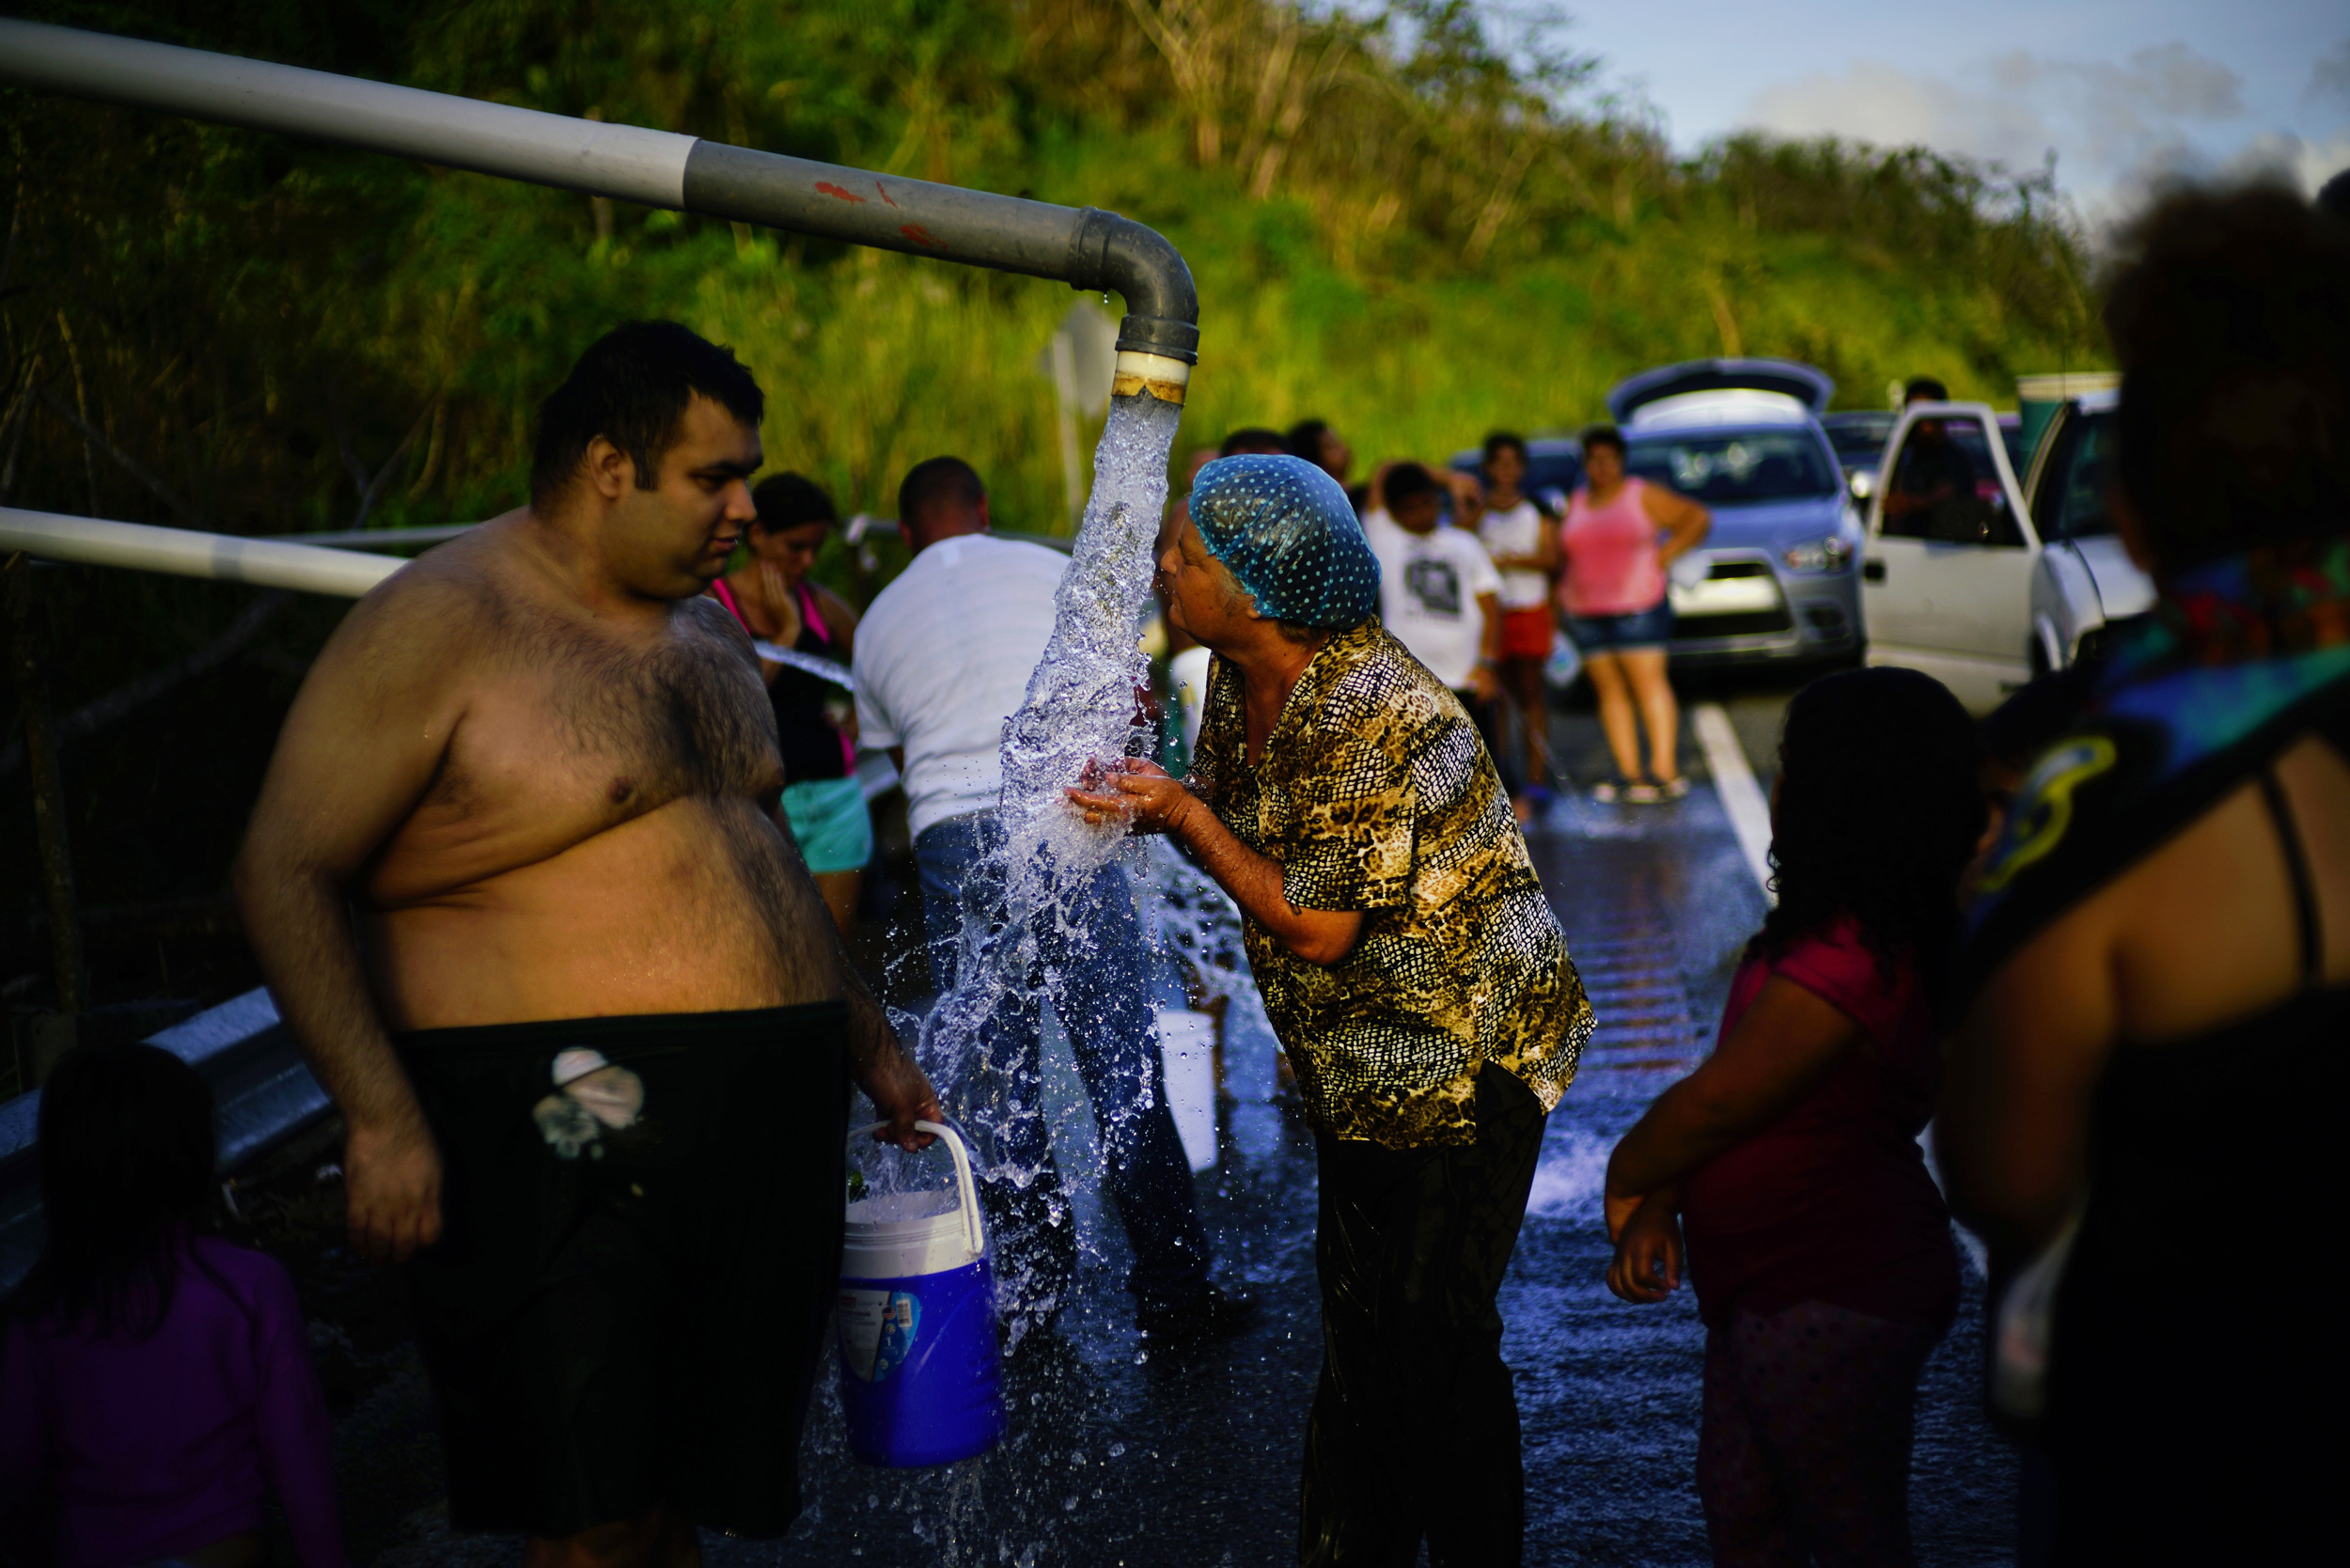 Image: People bathe in water piped from a creek in the mountains